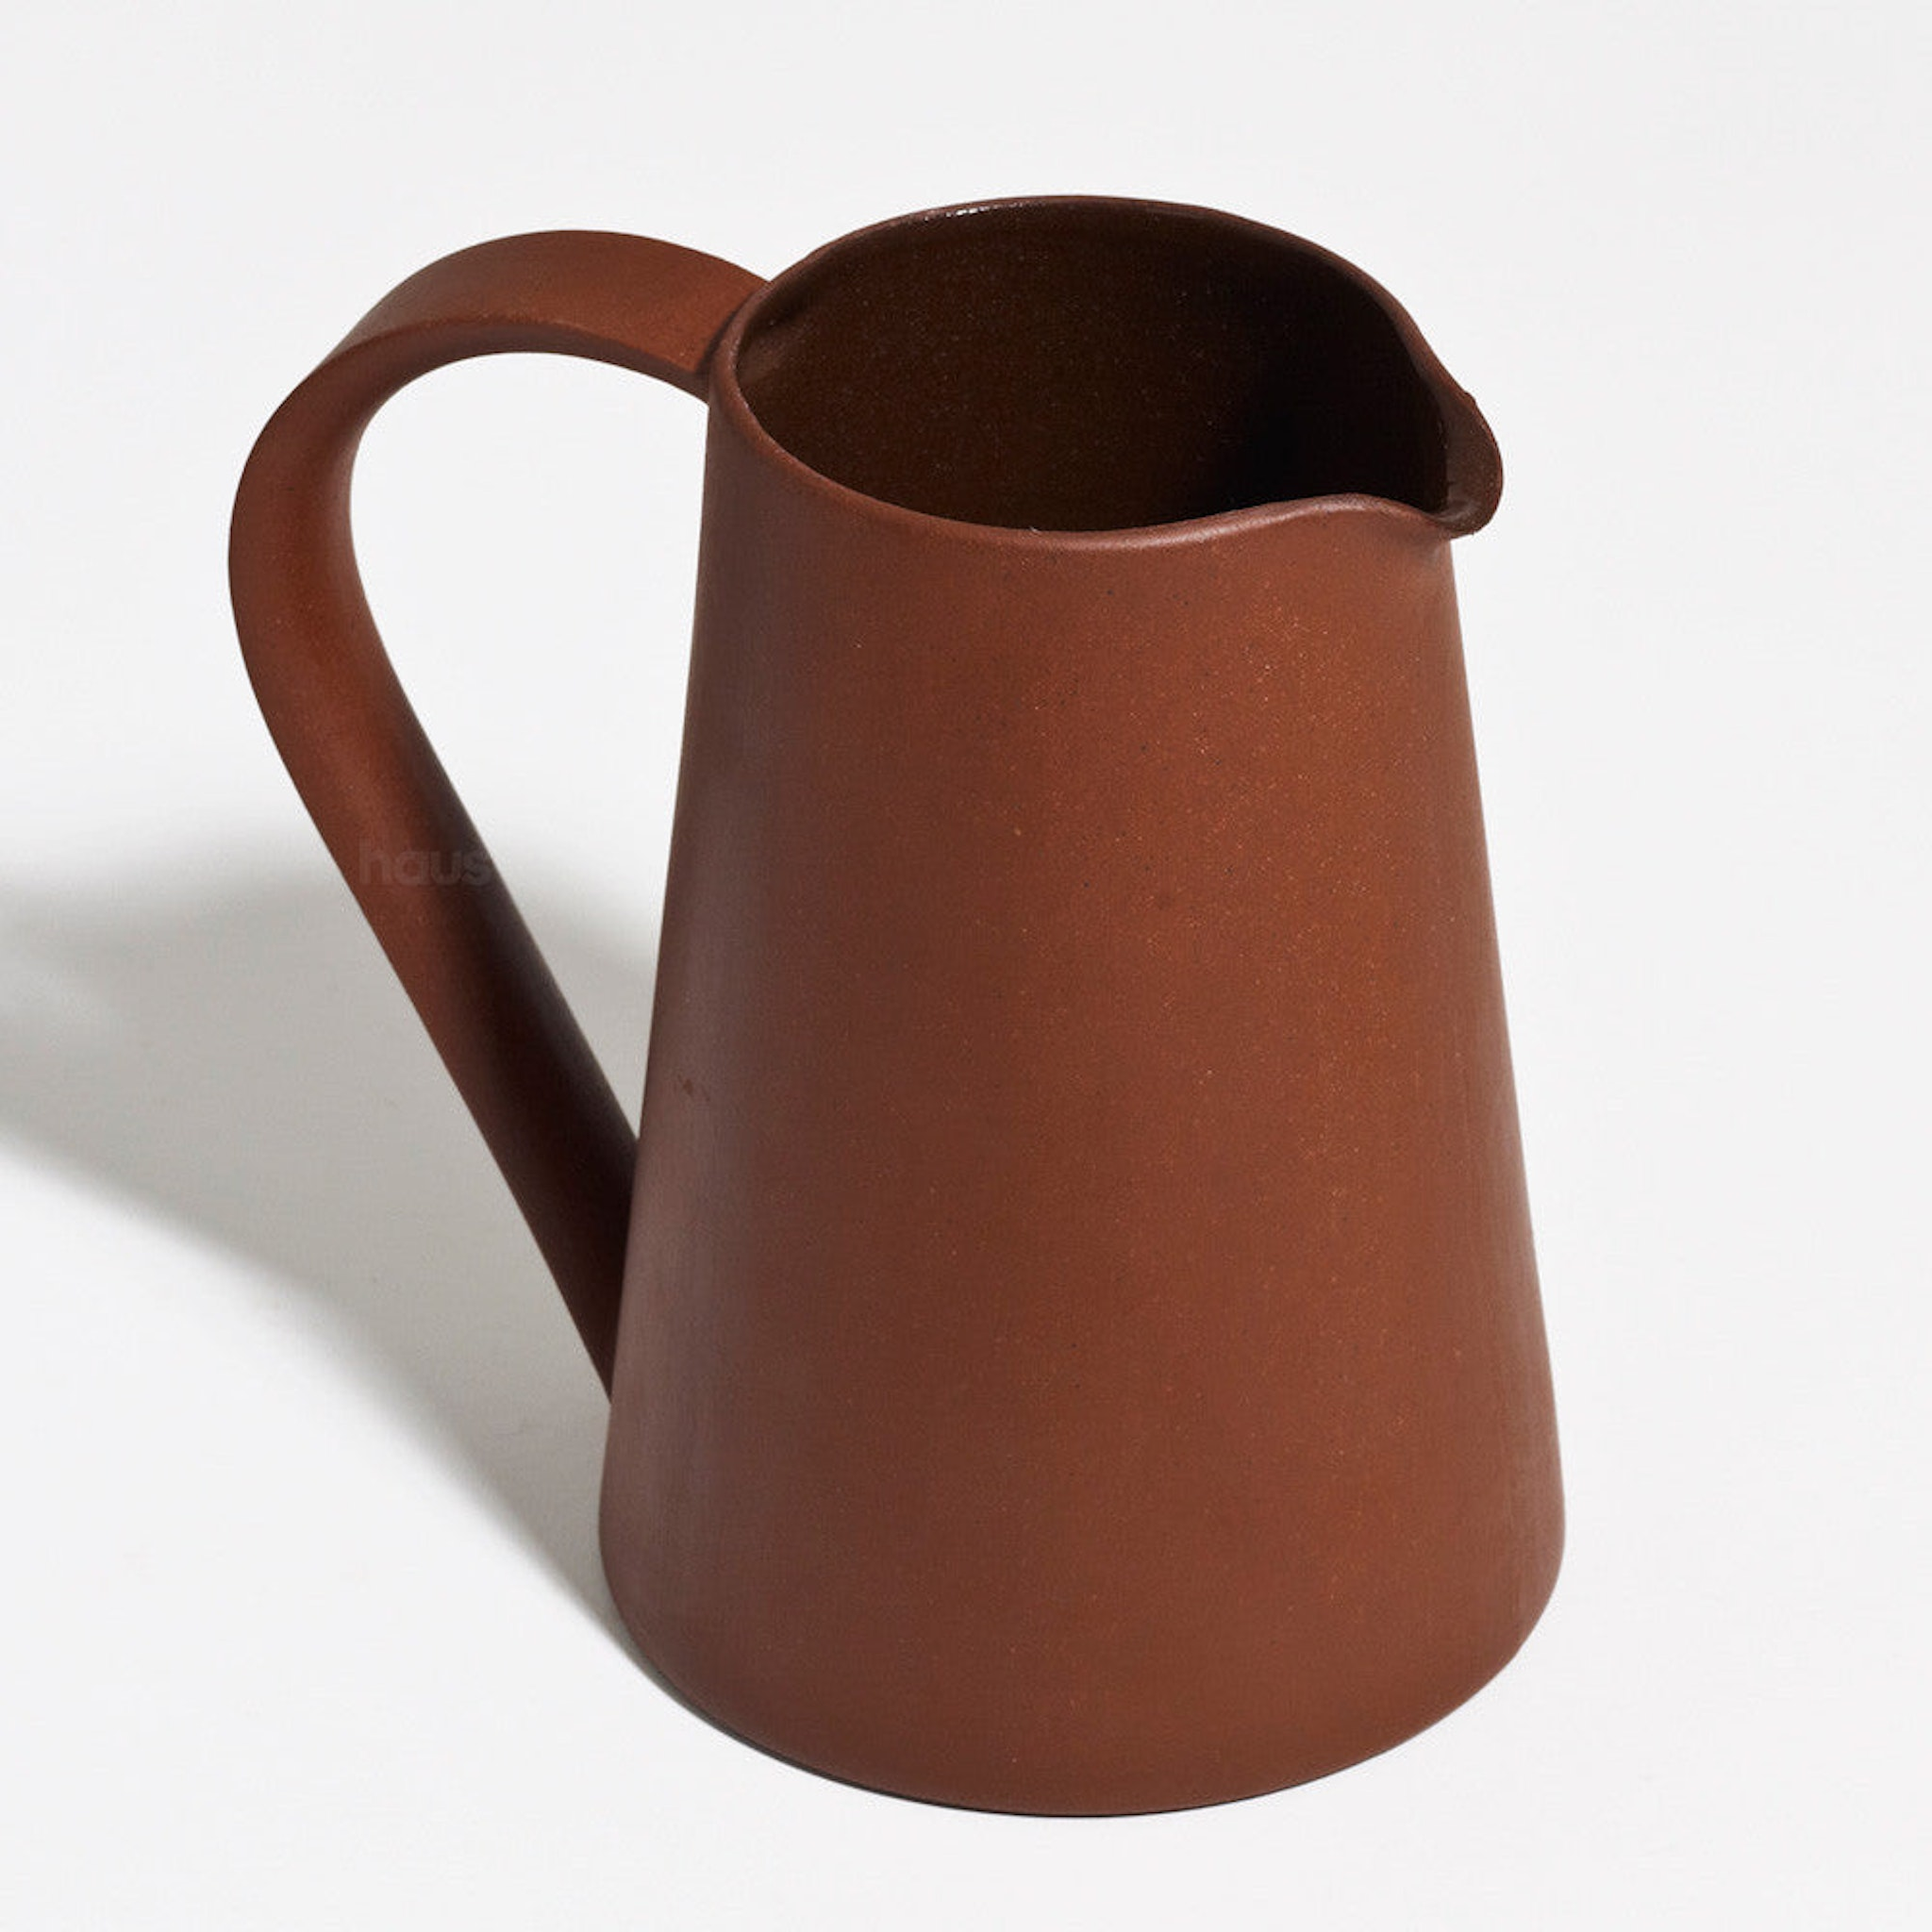 Terracotta Pitcher by Another Country